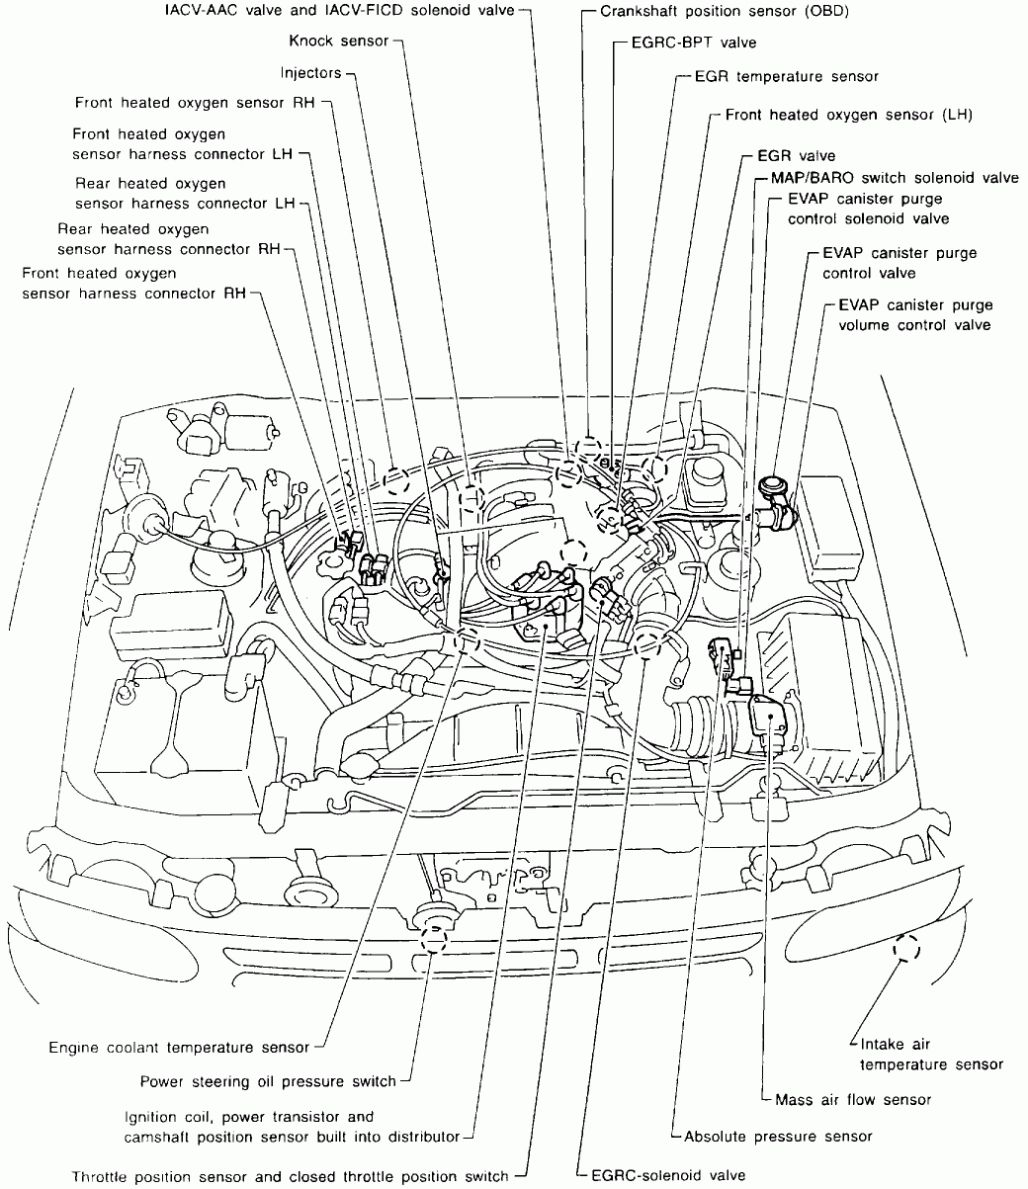 Nissan Engine Diagram Wiring Diagrams Tar 1997 Nissan Altima Exhaust System Diagram 2001 Nissan Engine Diagram Wiring Diagram Nissan Pathfinder Diagram Nissan